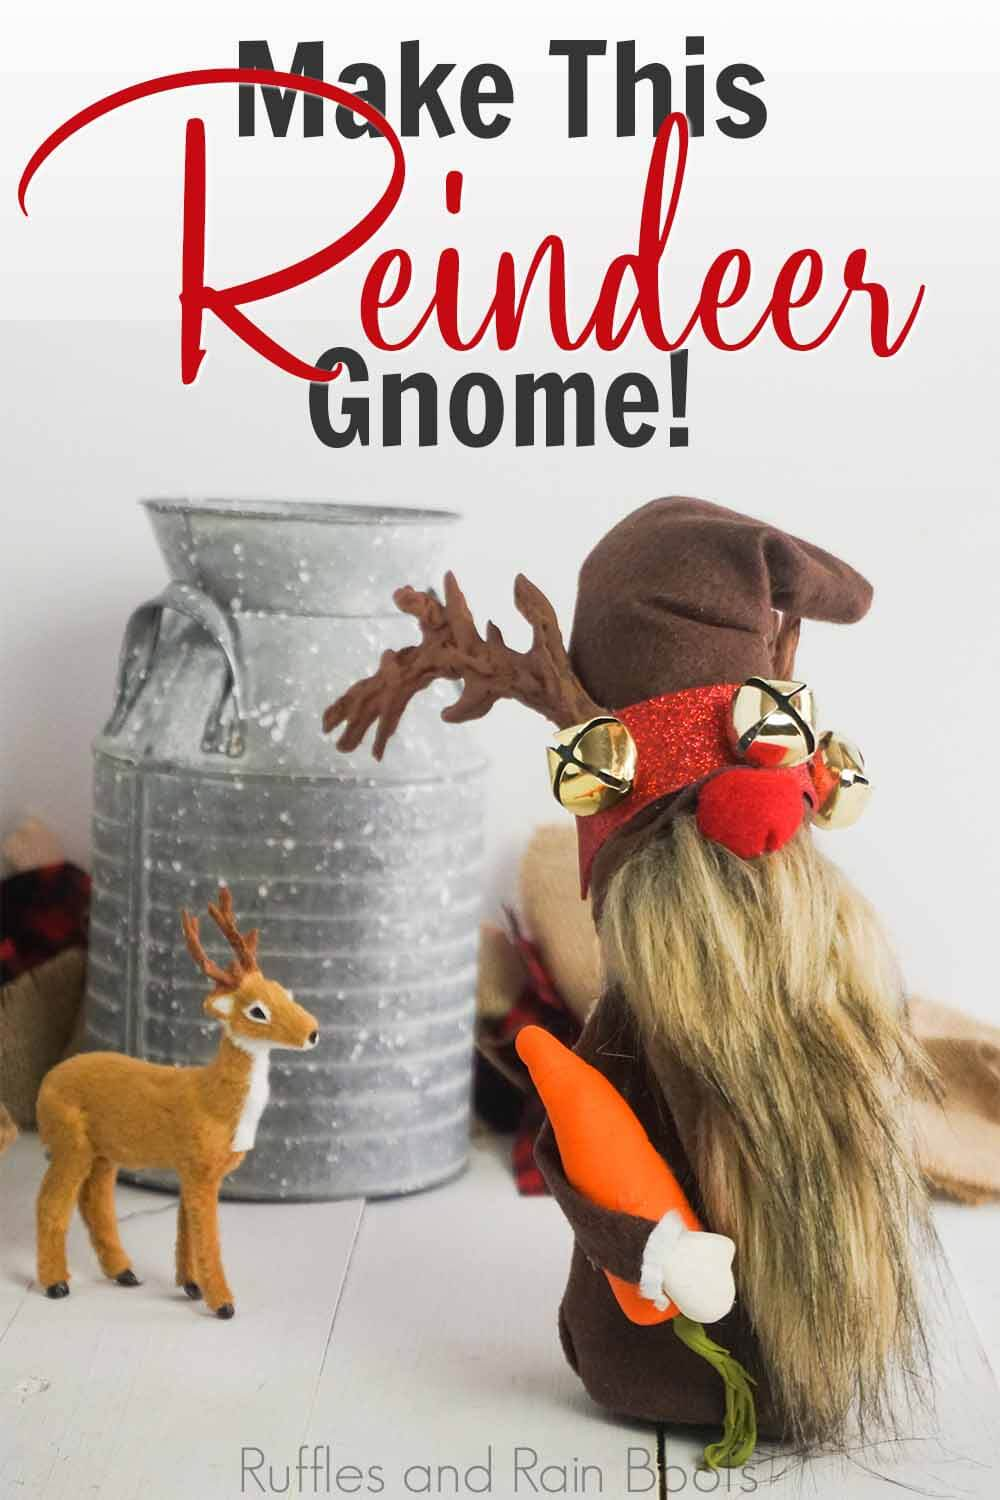 diy gnome tutorial with reindeer costume with text which reads make this reindeer gnome